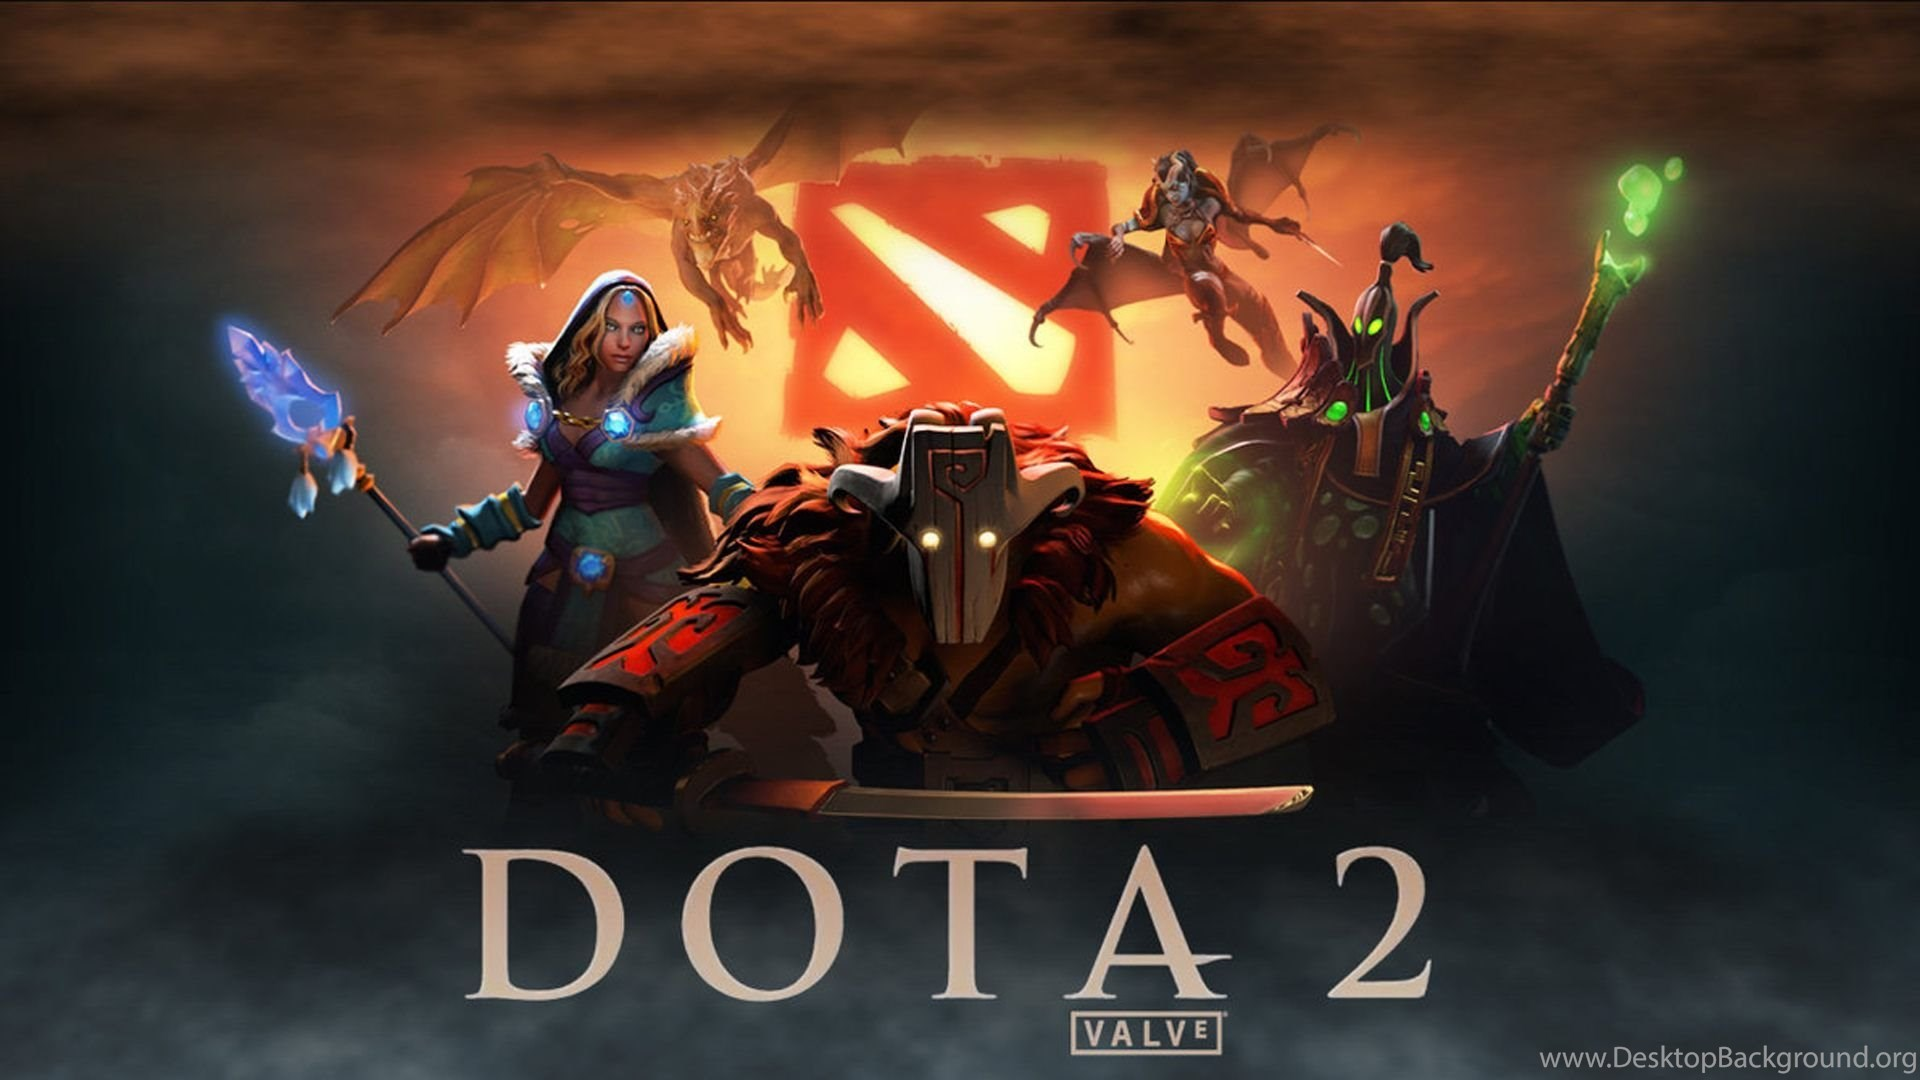 dota 2 wallpapers hd free download for desktop and mobile desktop